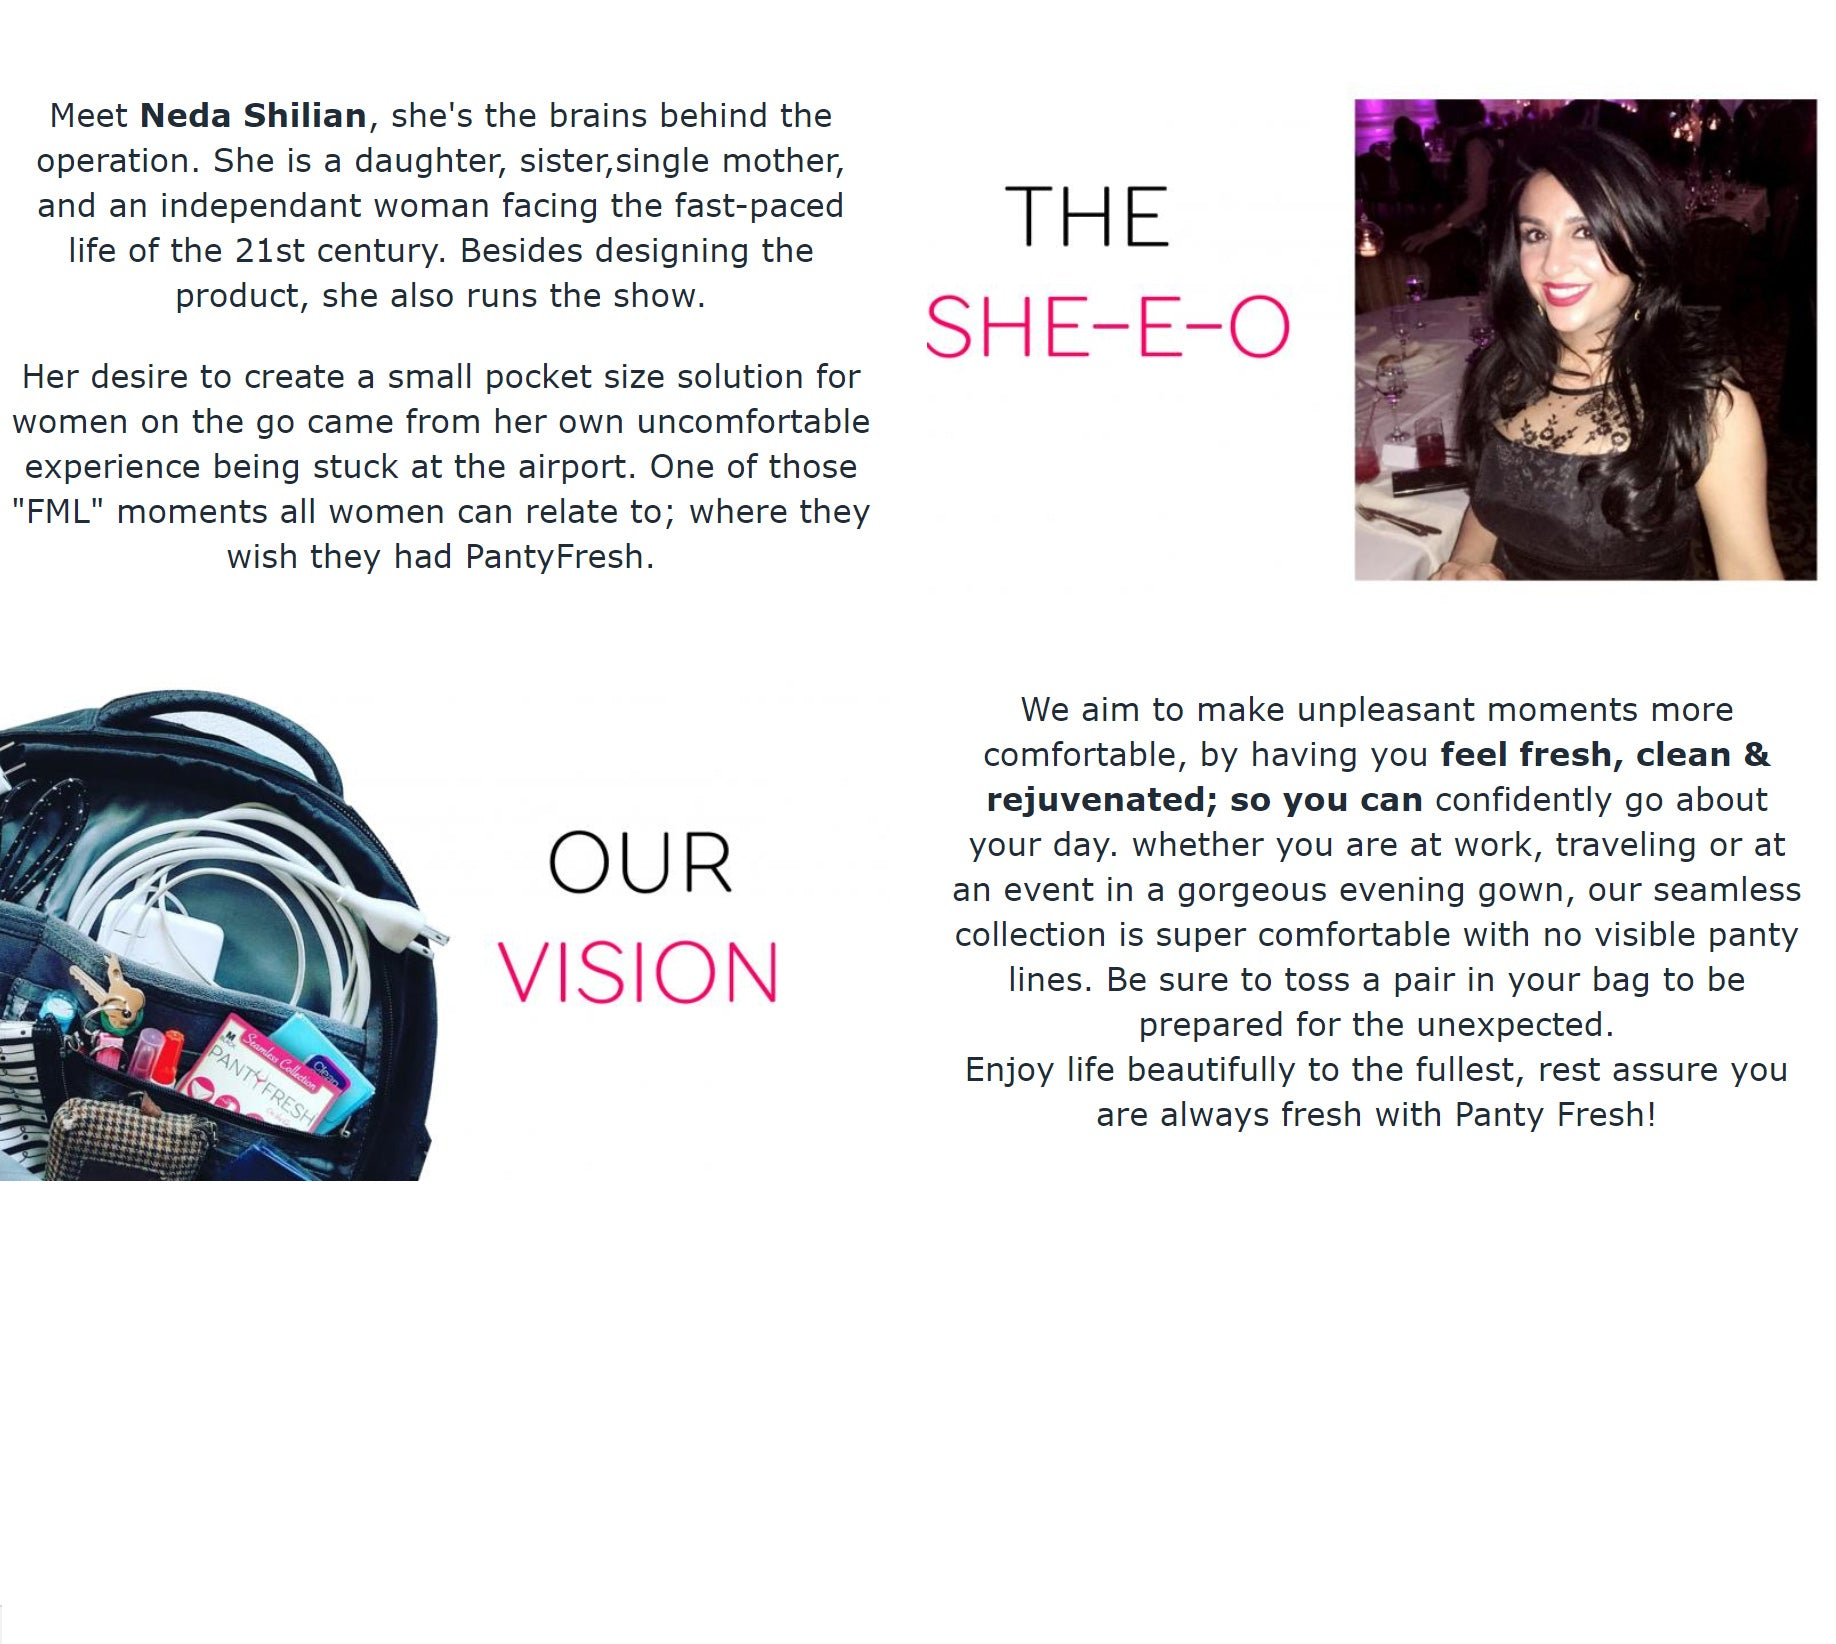 Meet Neda Shilian, the she-E-O and   brains behind PantyFresh